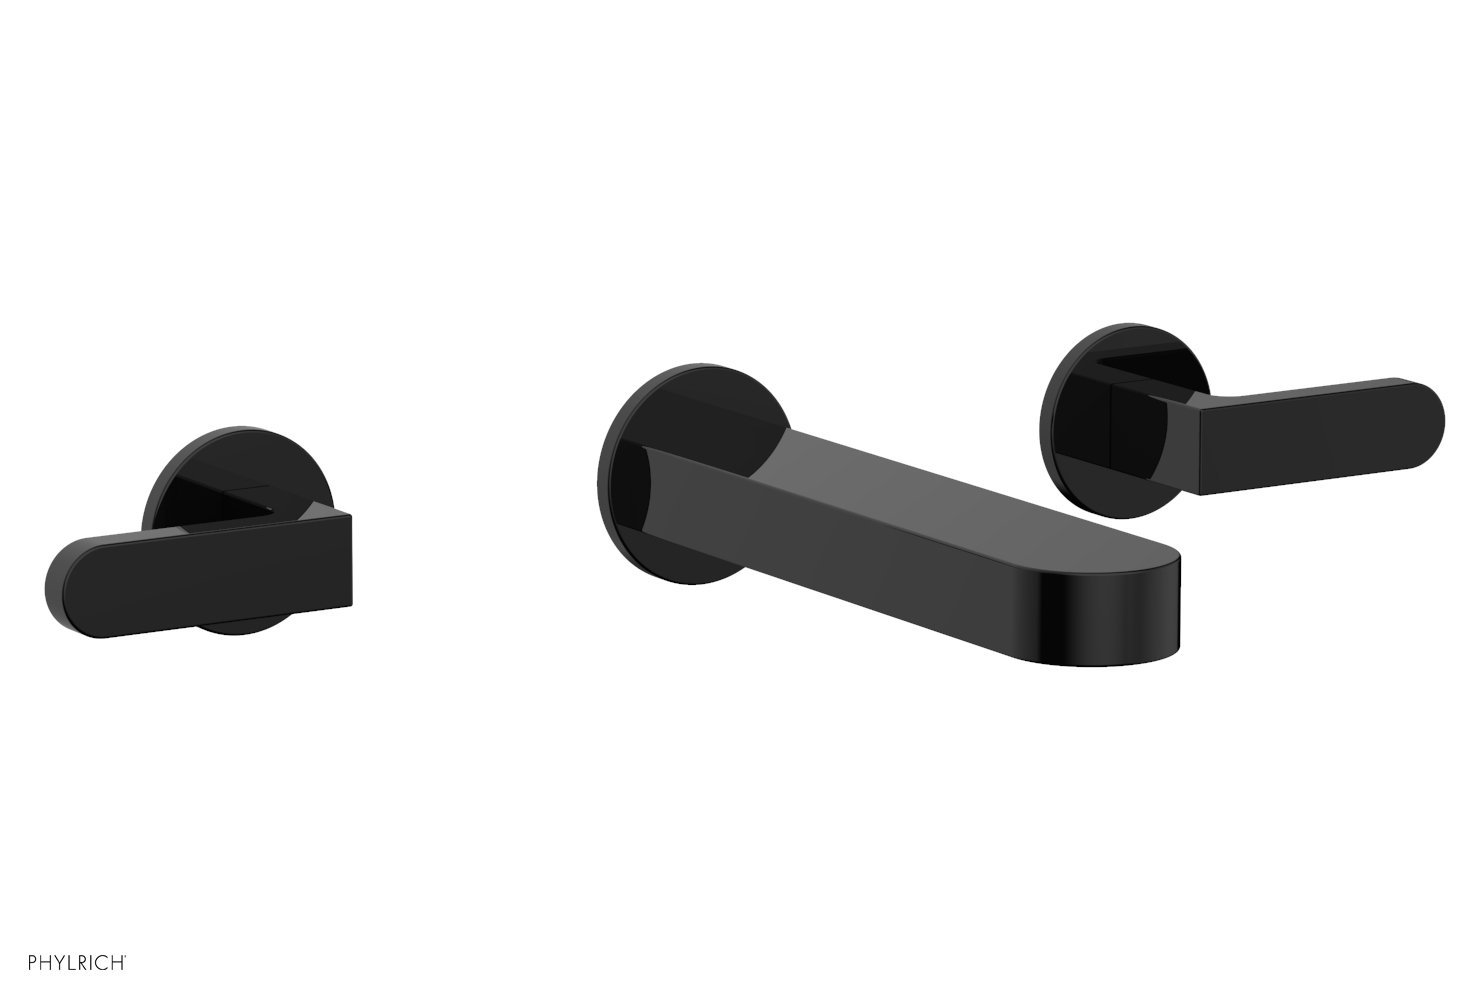 Phylrich 183-12-041 ROND Wall Lavatory Set - Lever Handles - Gloss Black